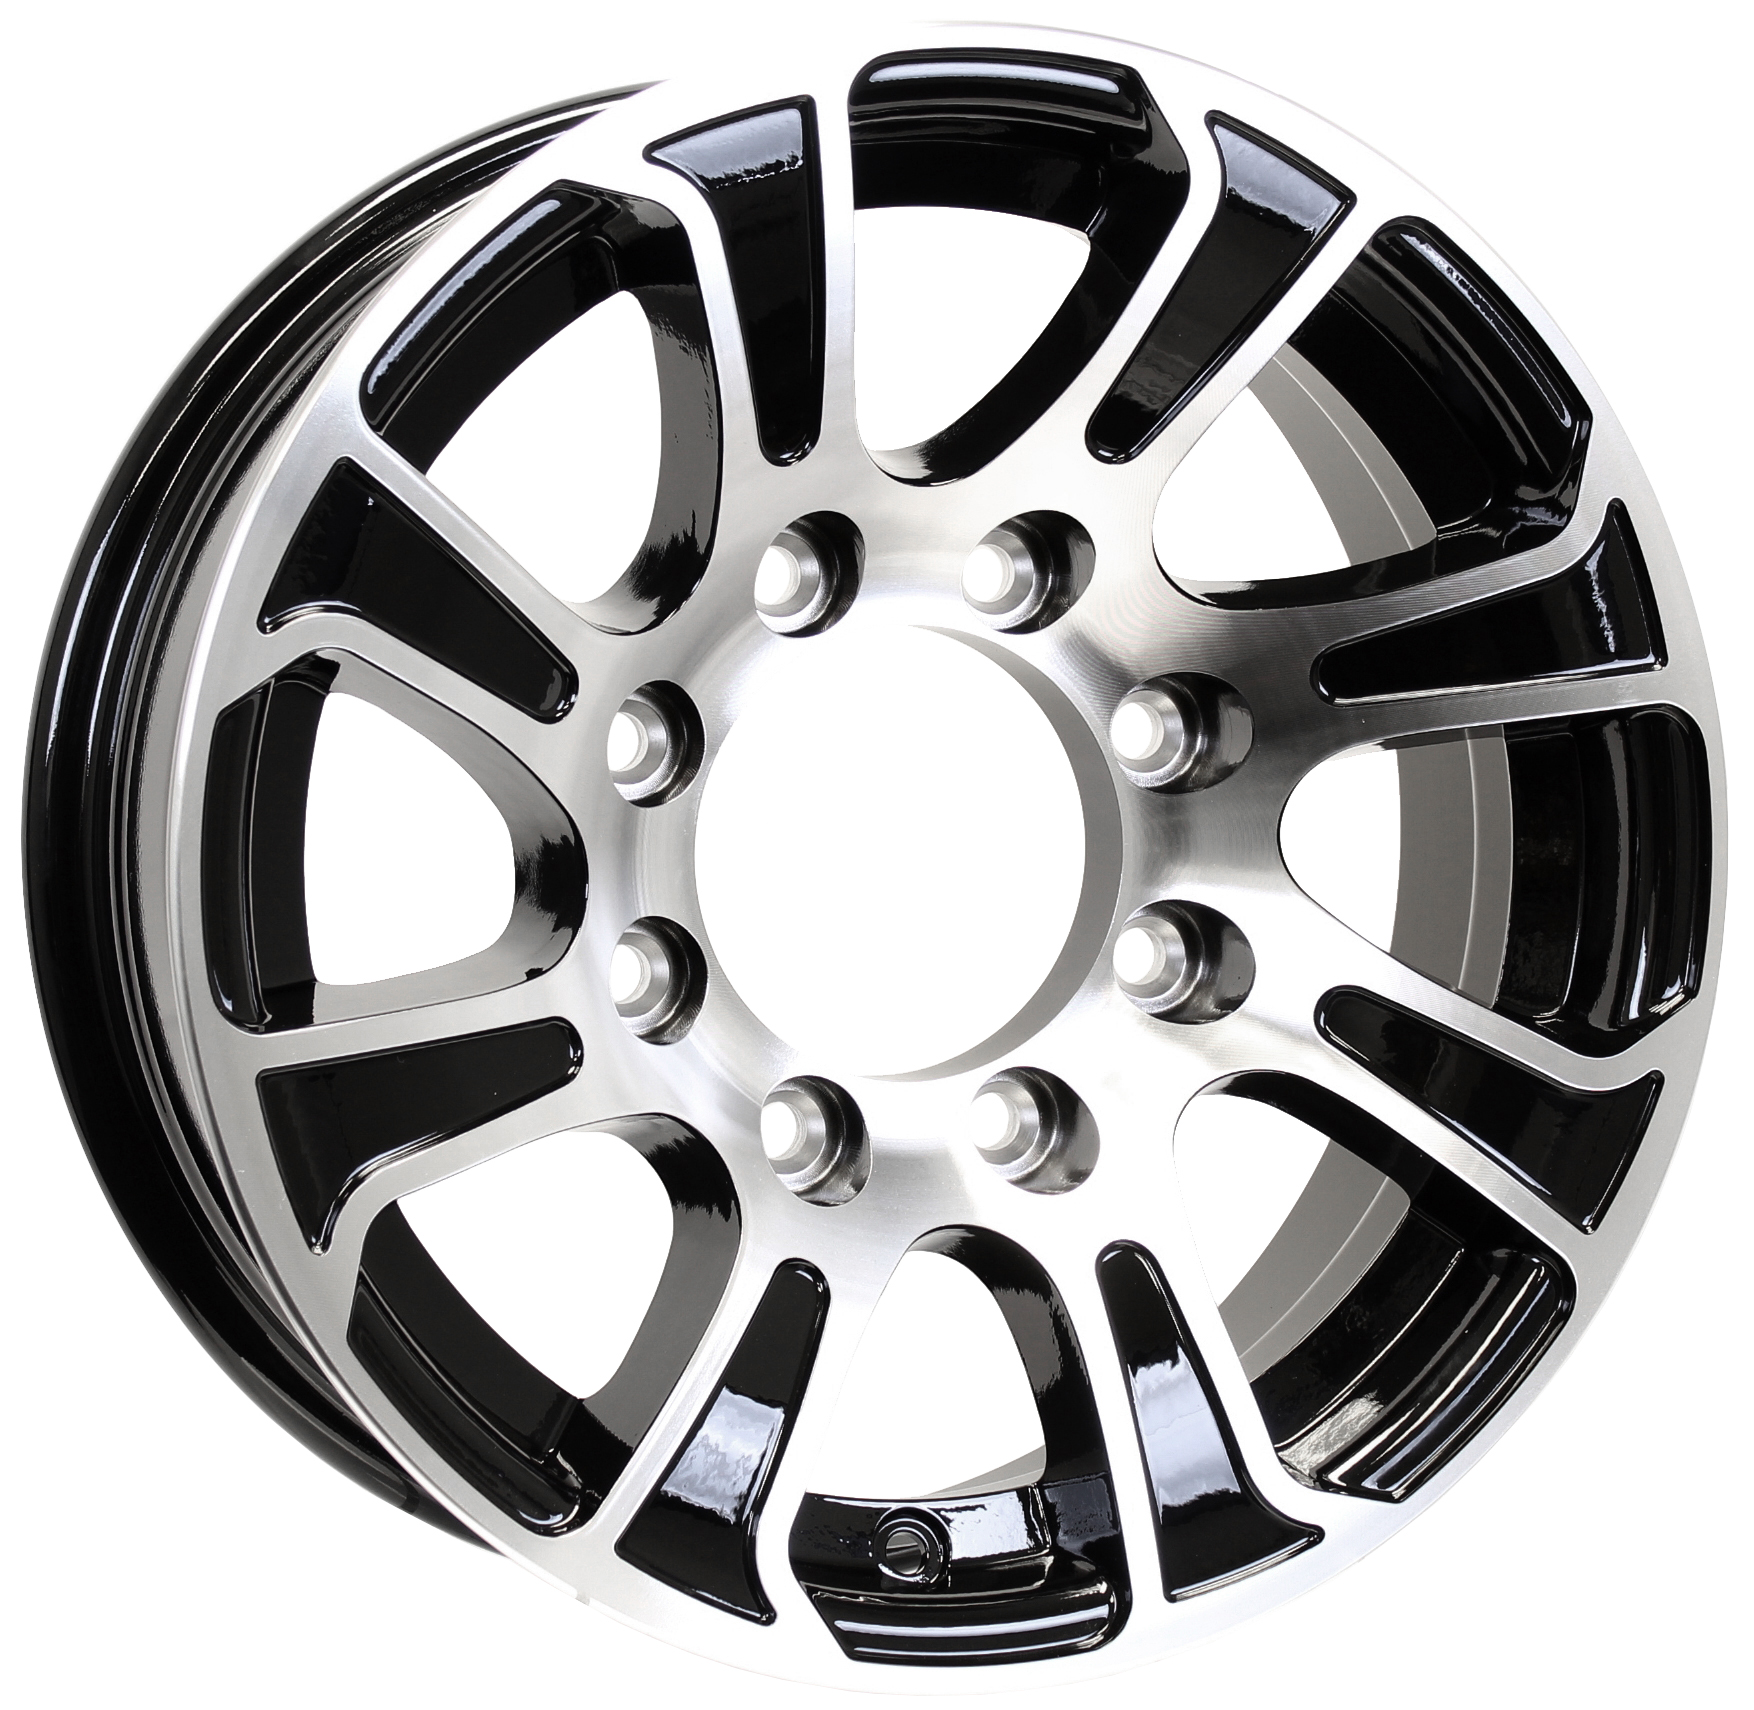 Summit 16x6; 8-Lug Black Aluminum Trailer Wheel Image